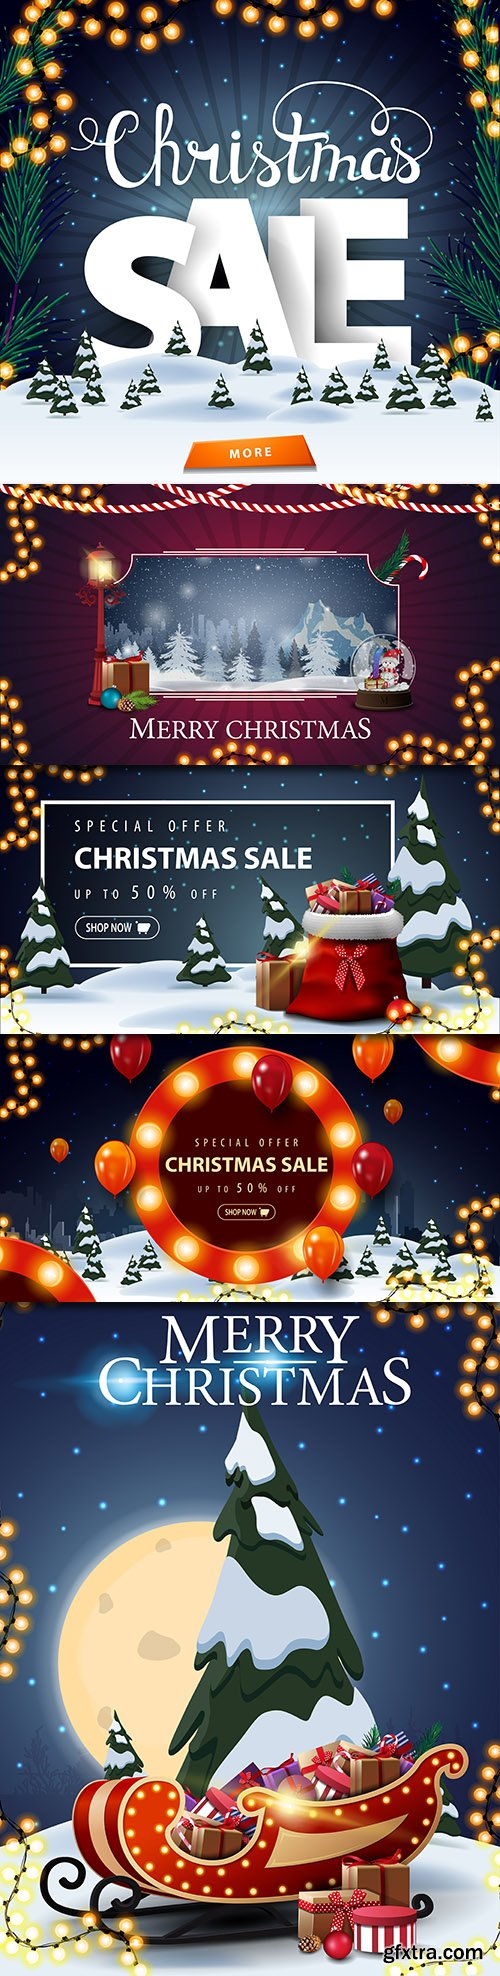 Merry Christmas and New Year background decorative 26